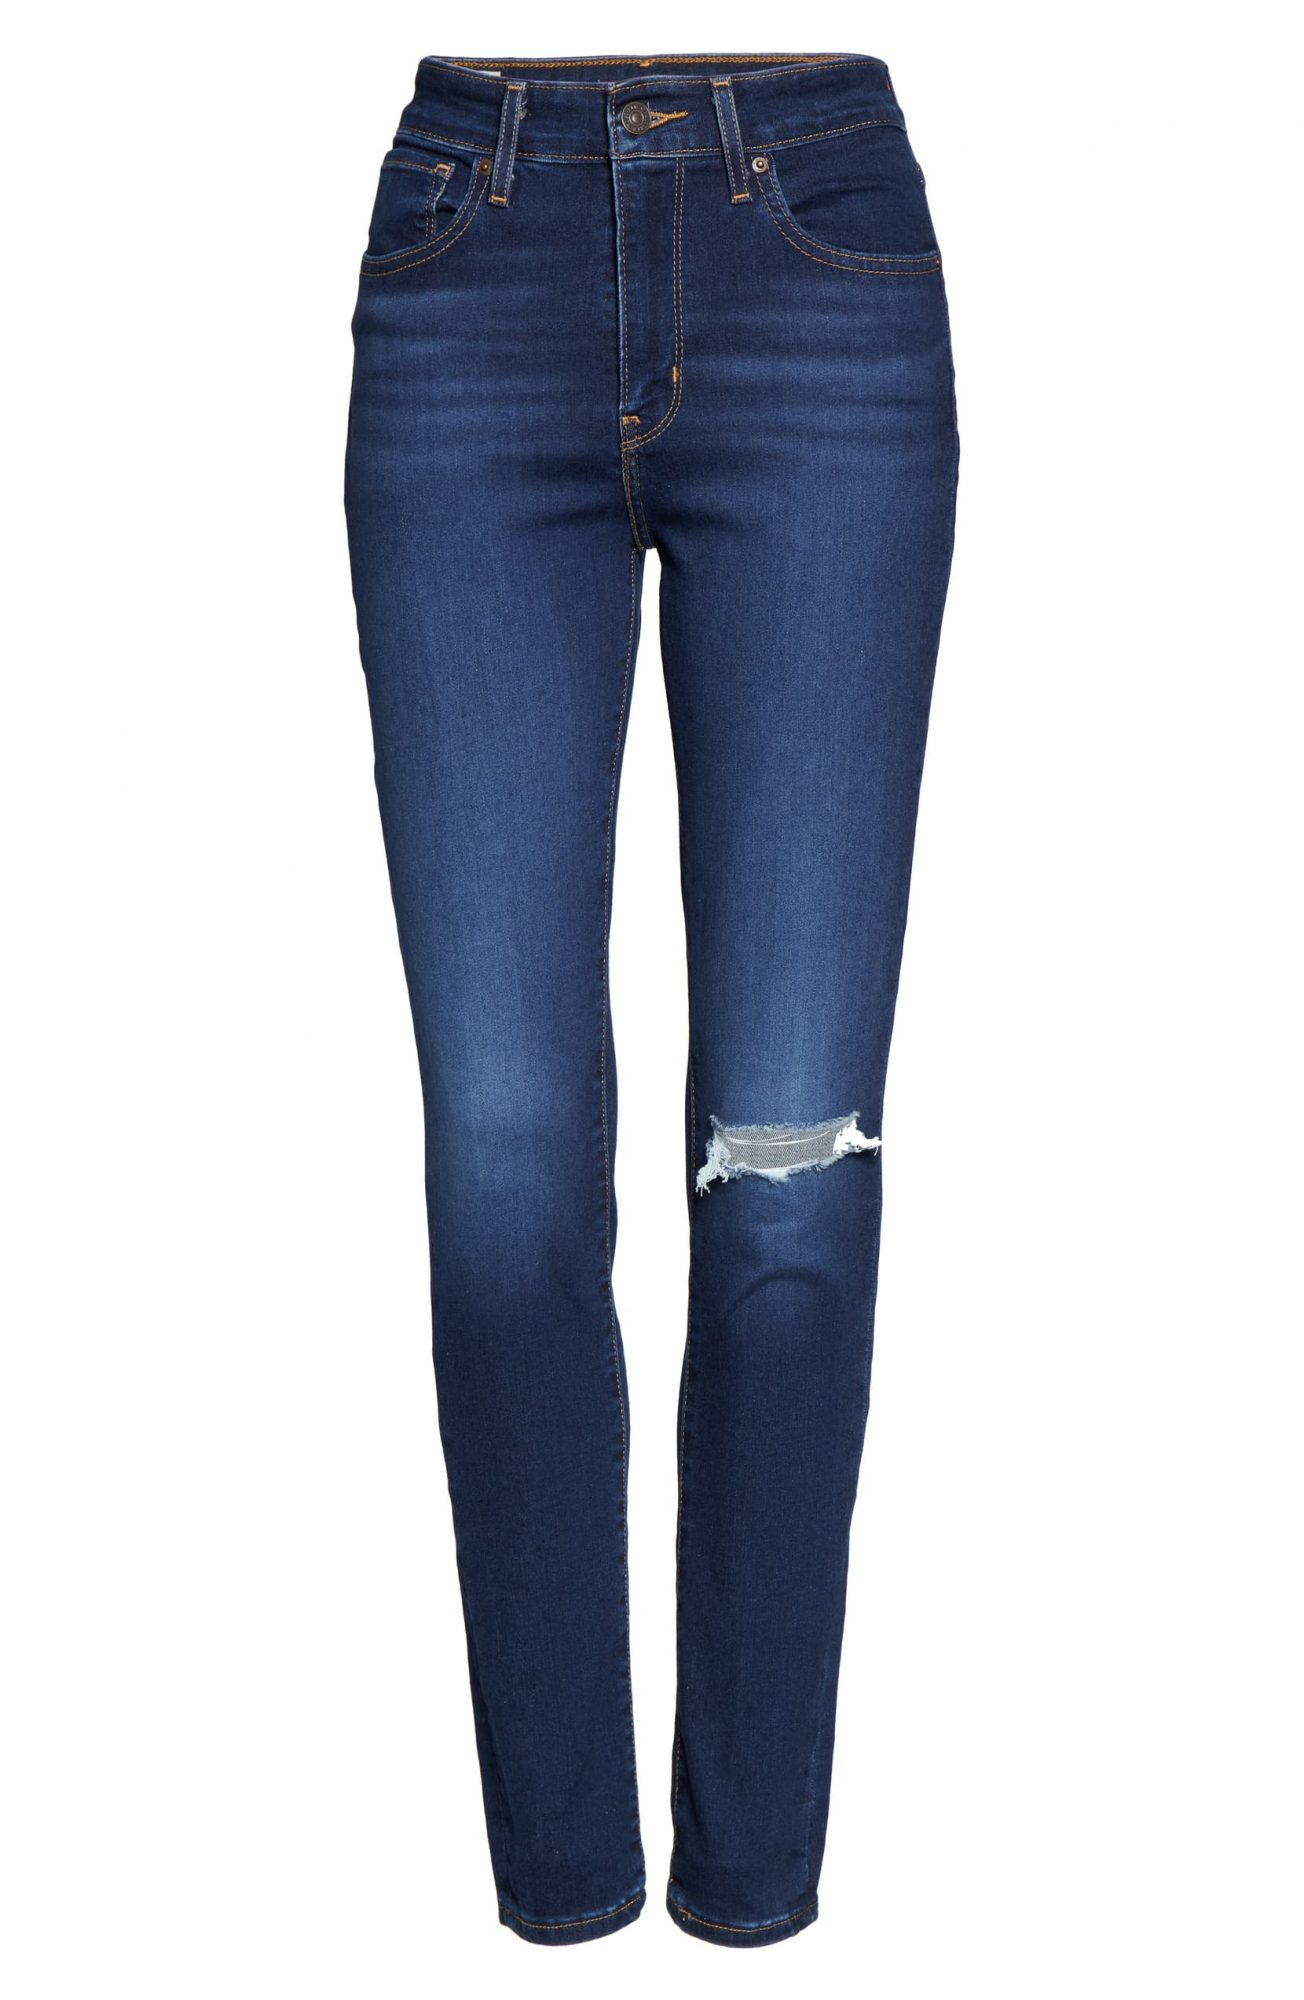 Nordstrom Black Friday Sale 2019 Levi's 721 Ripped High Waist Skinny Jean